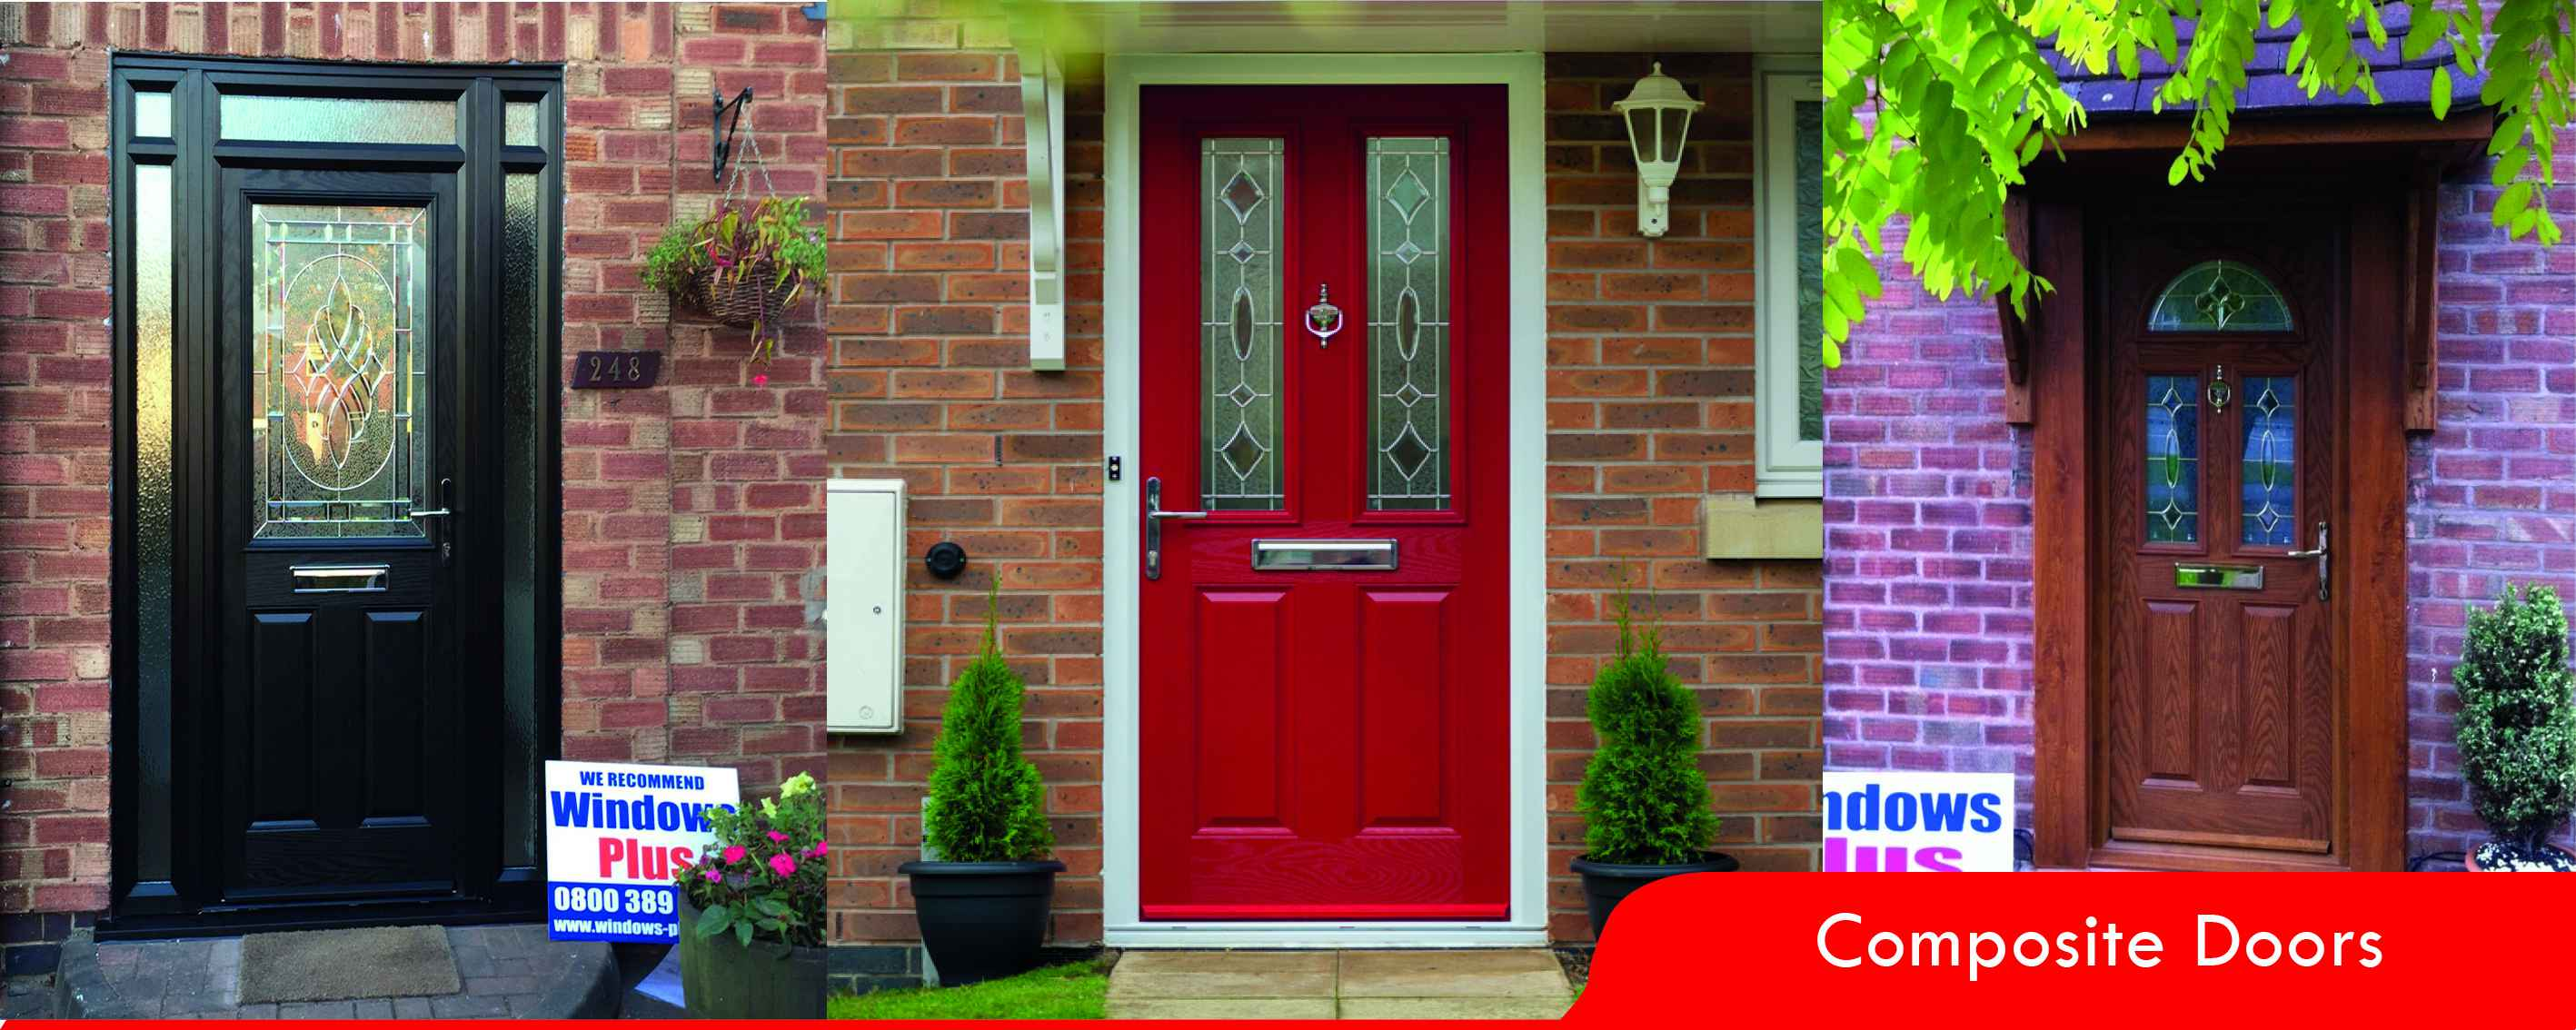 Composite Doors Coventry Nuneaton Rugby | GRP Composite Doors | Composite Door Showroom | & Composite Doors Coventry Nuneaton Rugby | GRP Composite Doors ...